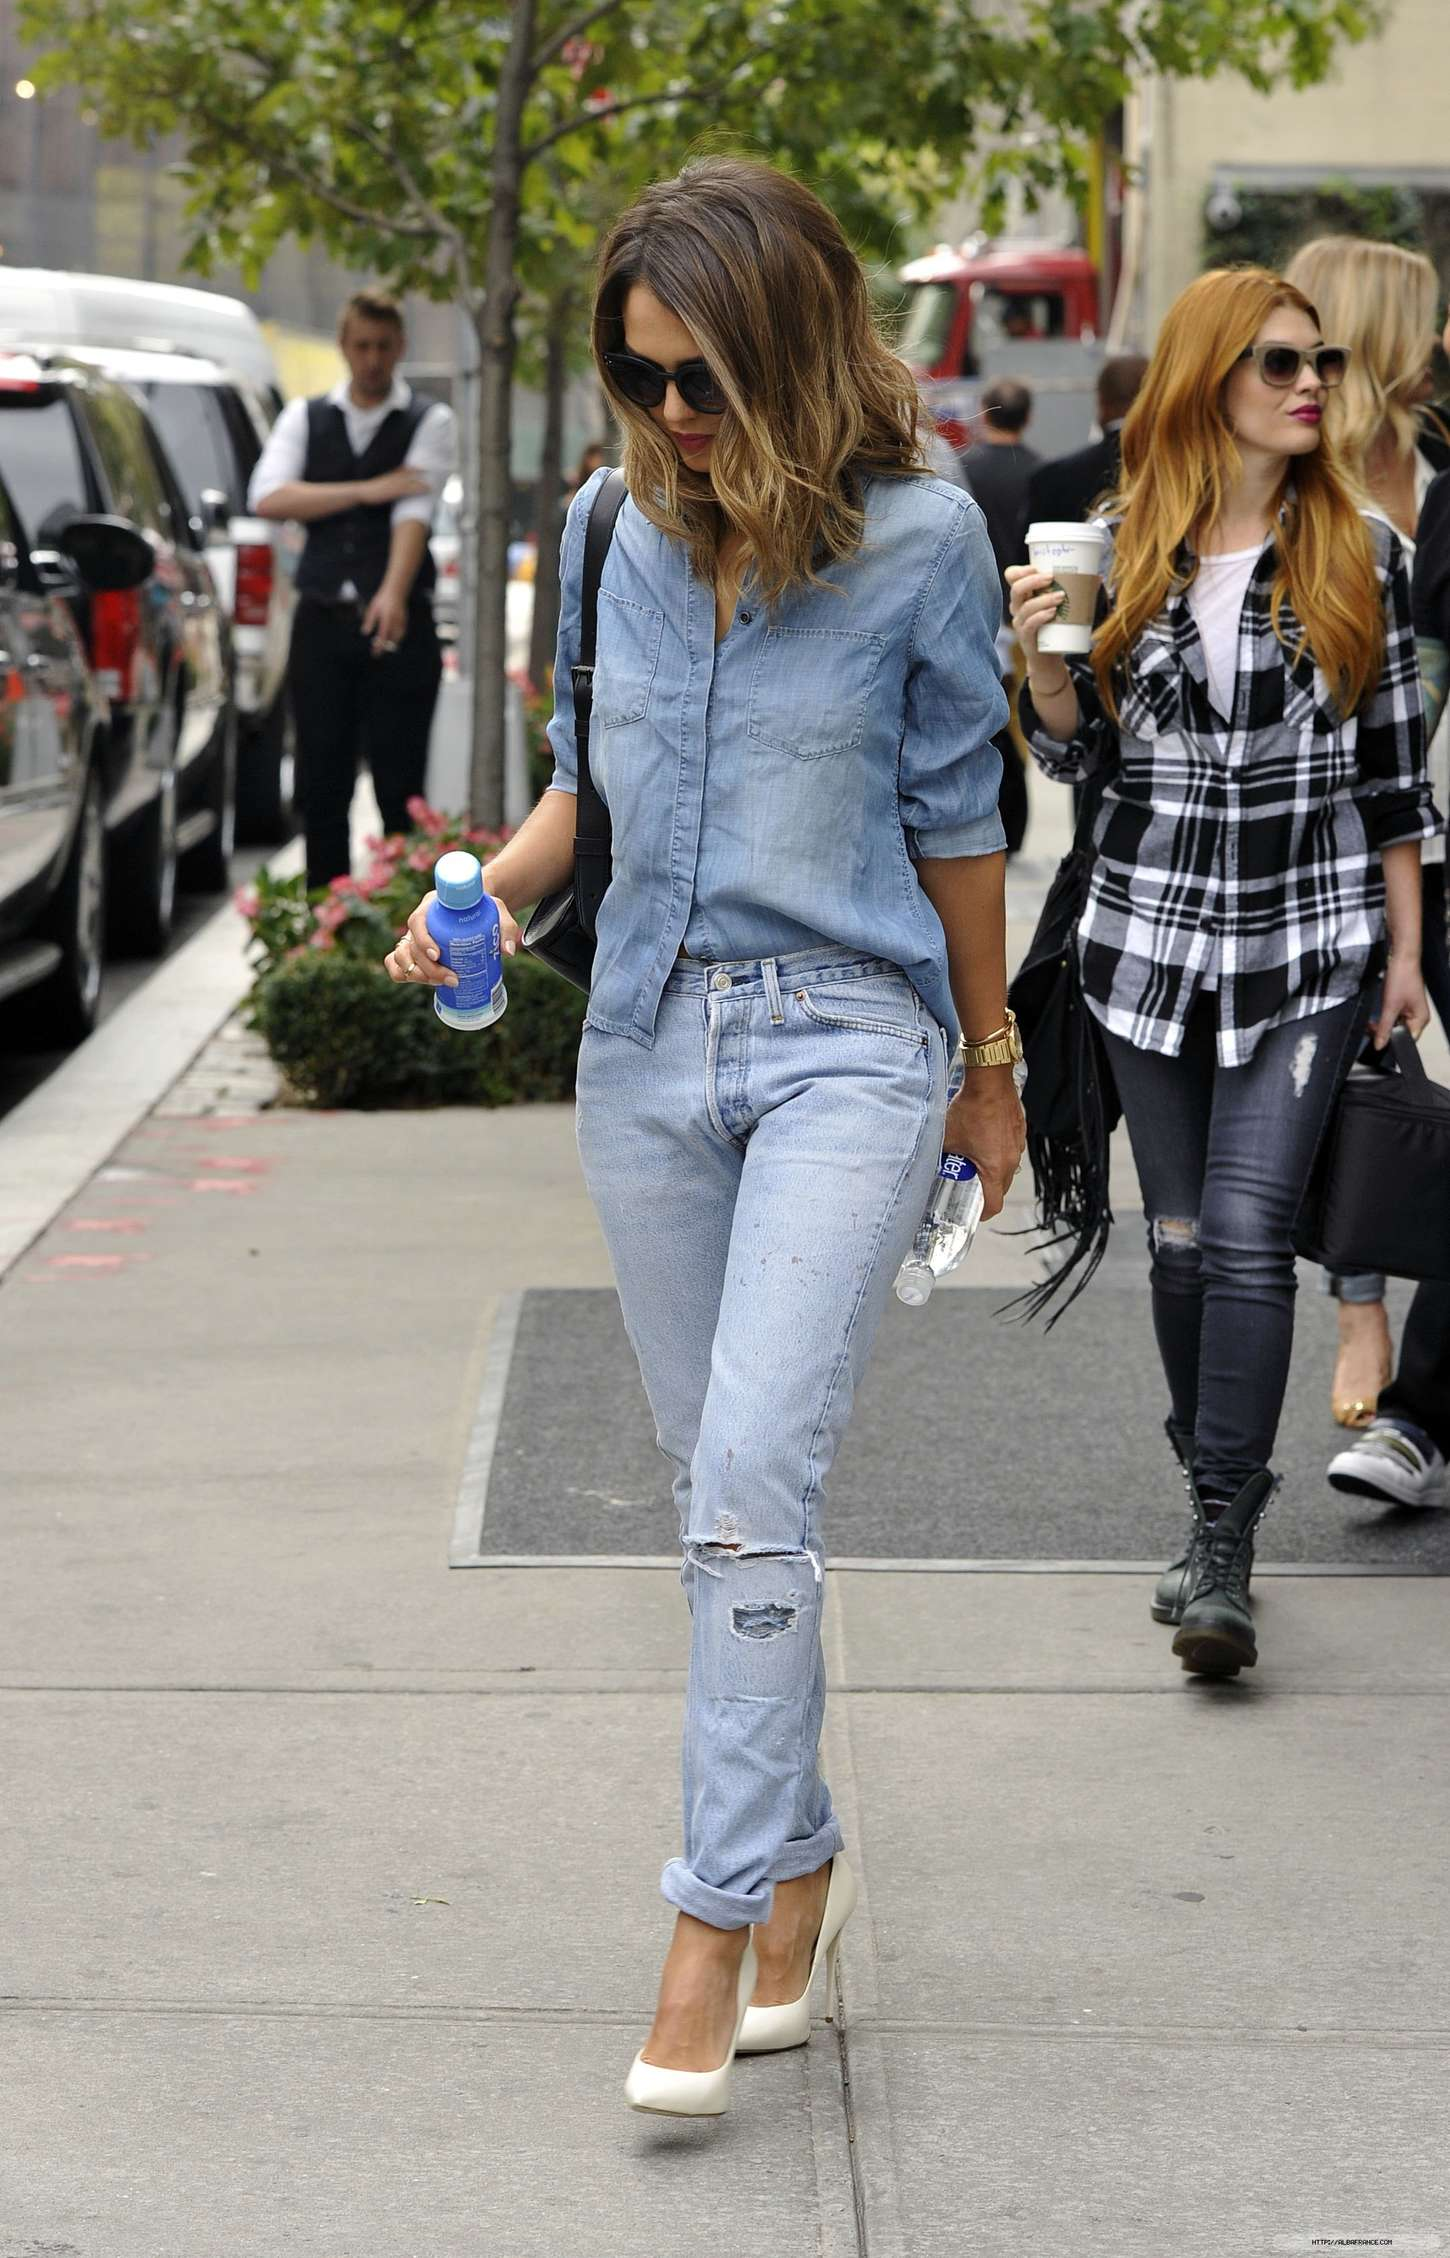 Jessica Alba In Jeans Leaving The Hotel In Los Angeles